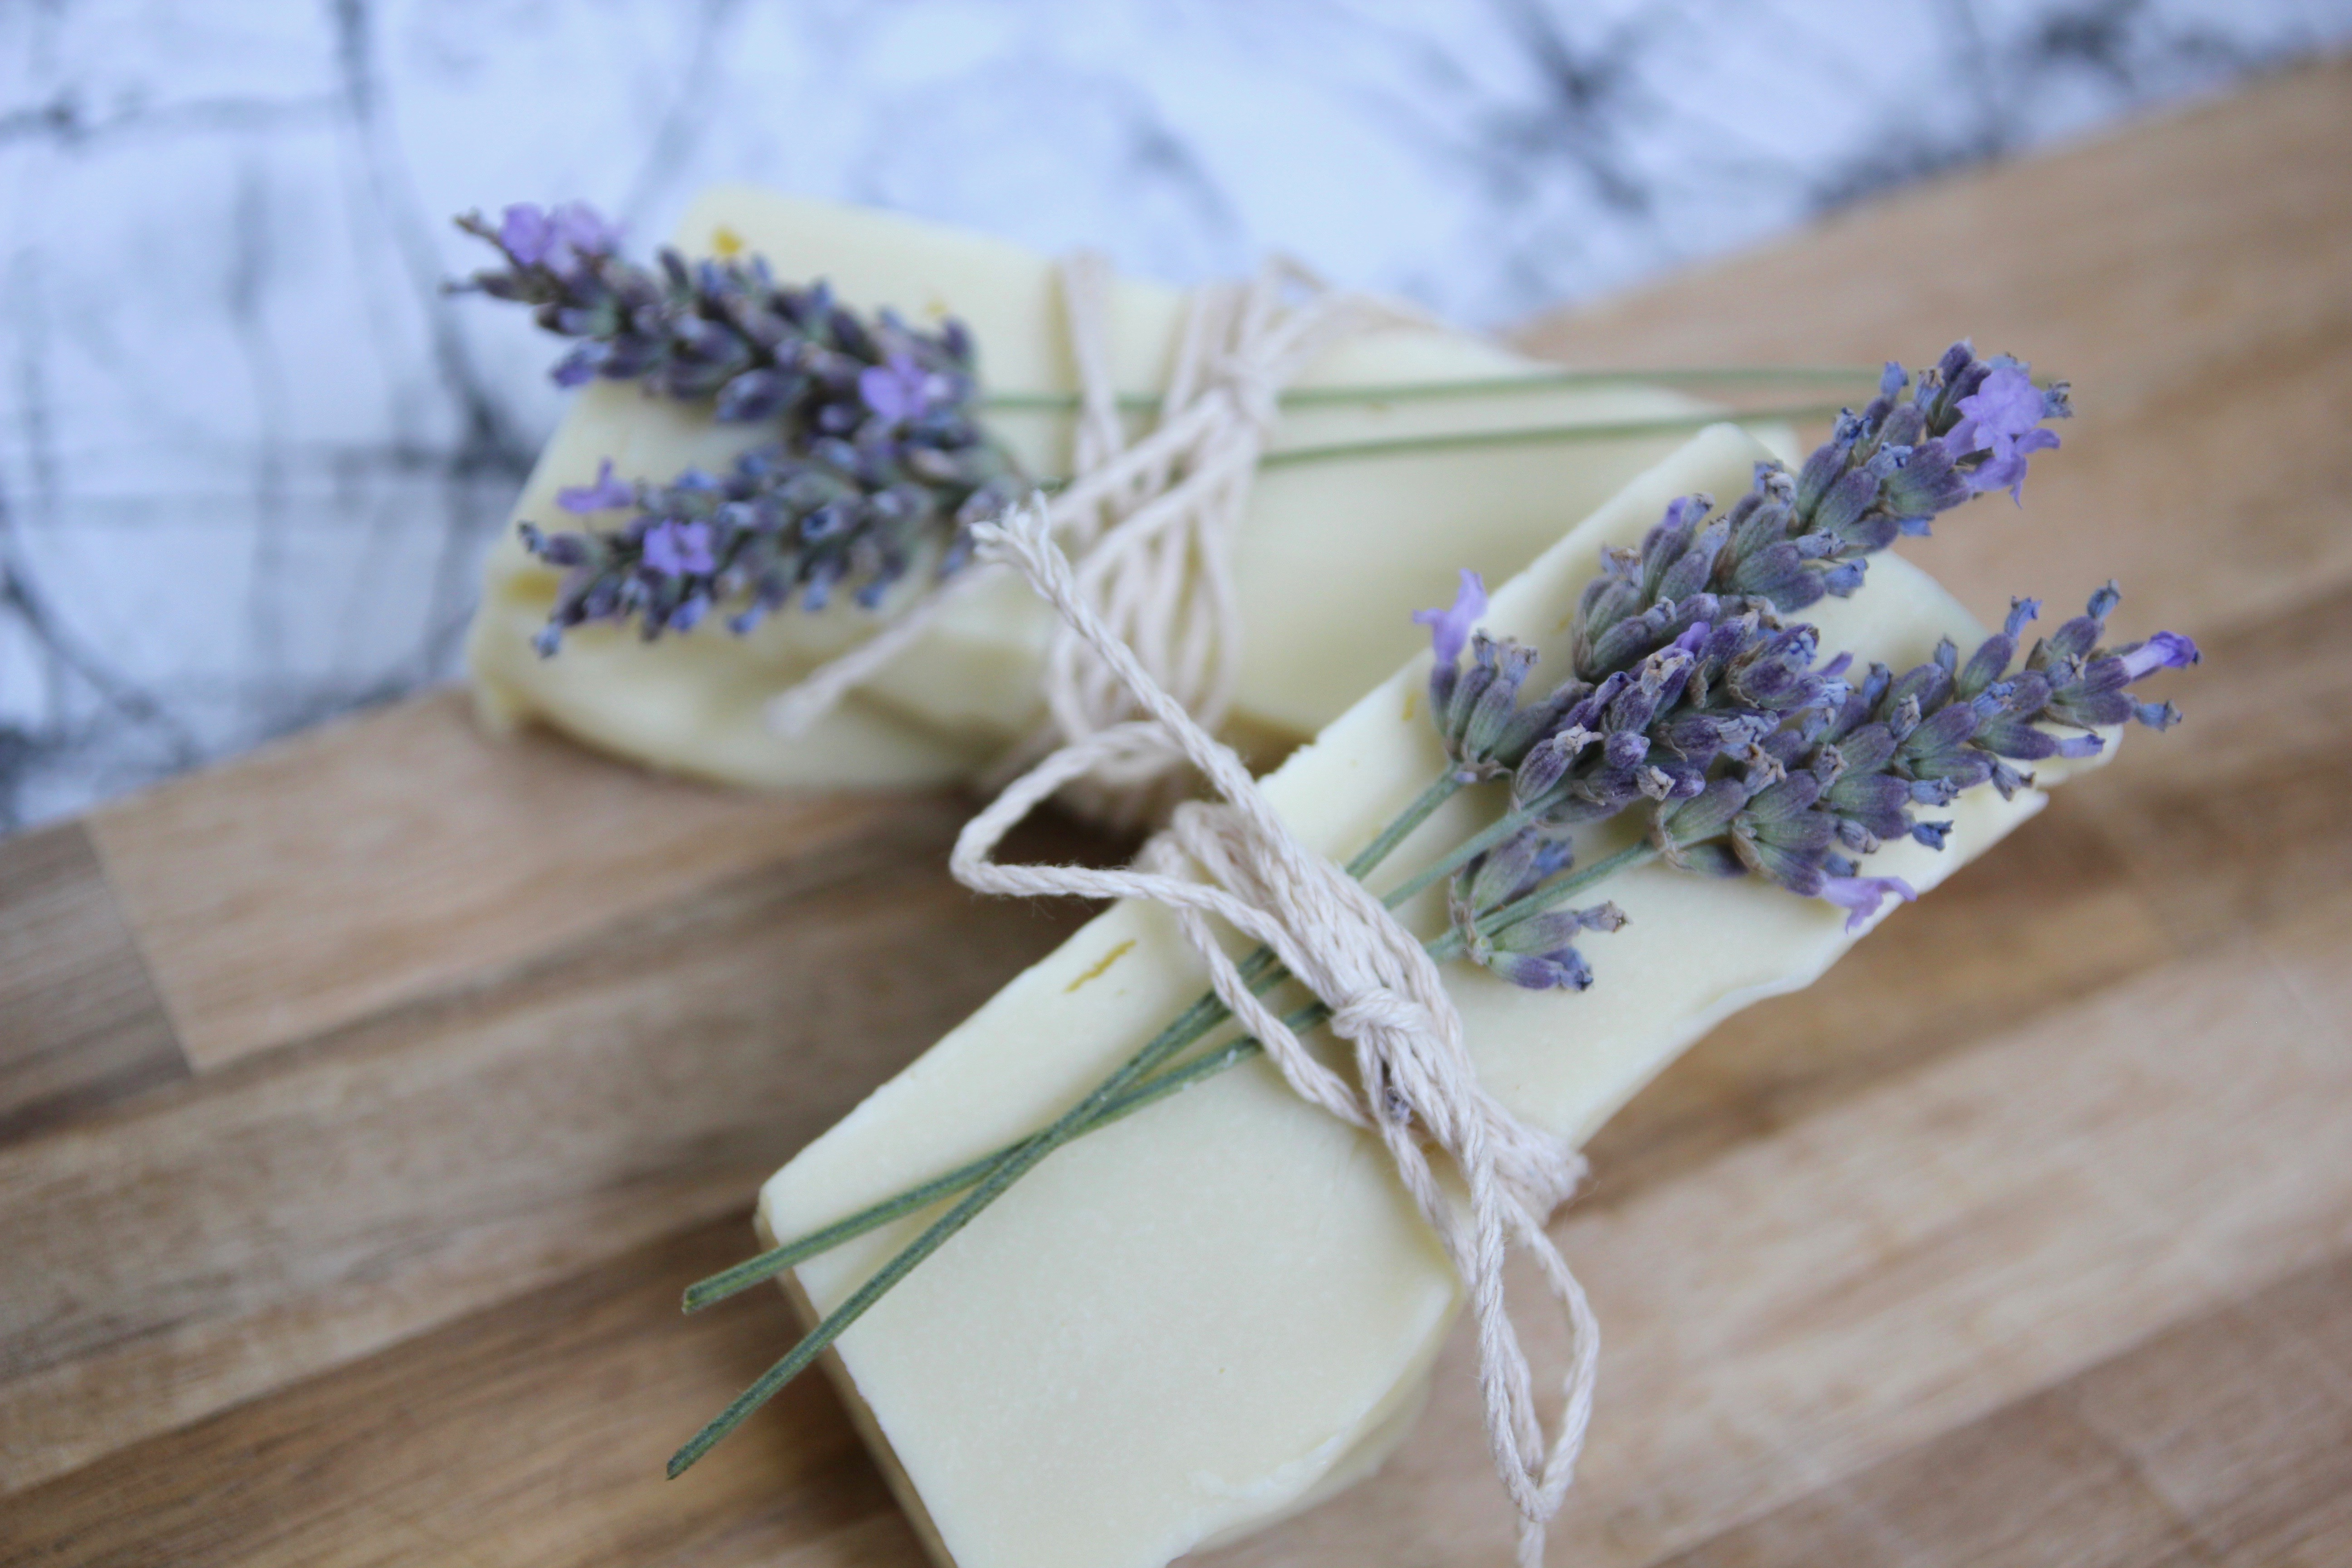 Picture of Natural Soap Bars Without Breaking the Bank | Cold Pressed Soap